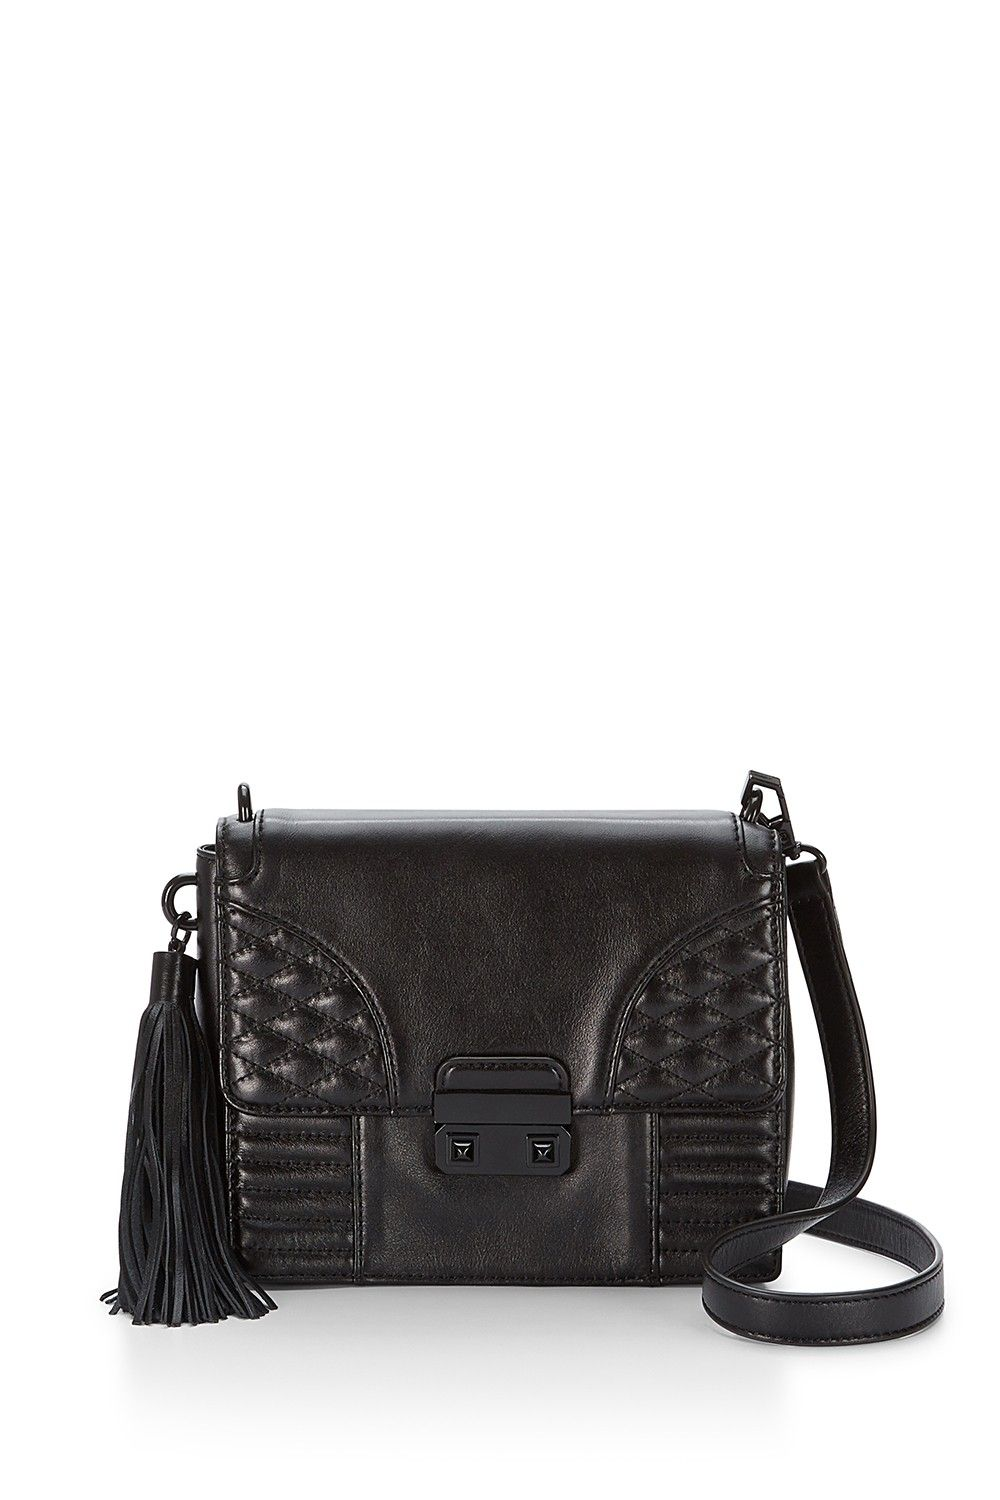 ed72b47a00c4 Aliz Crossbody - This petite crossbody is roomy enough to hold your  essentials